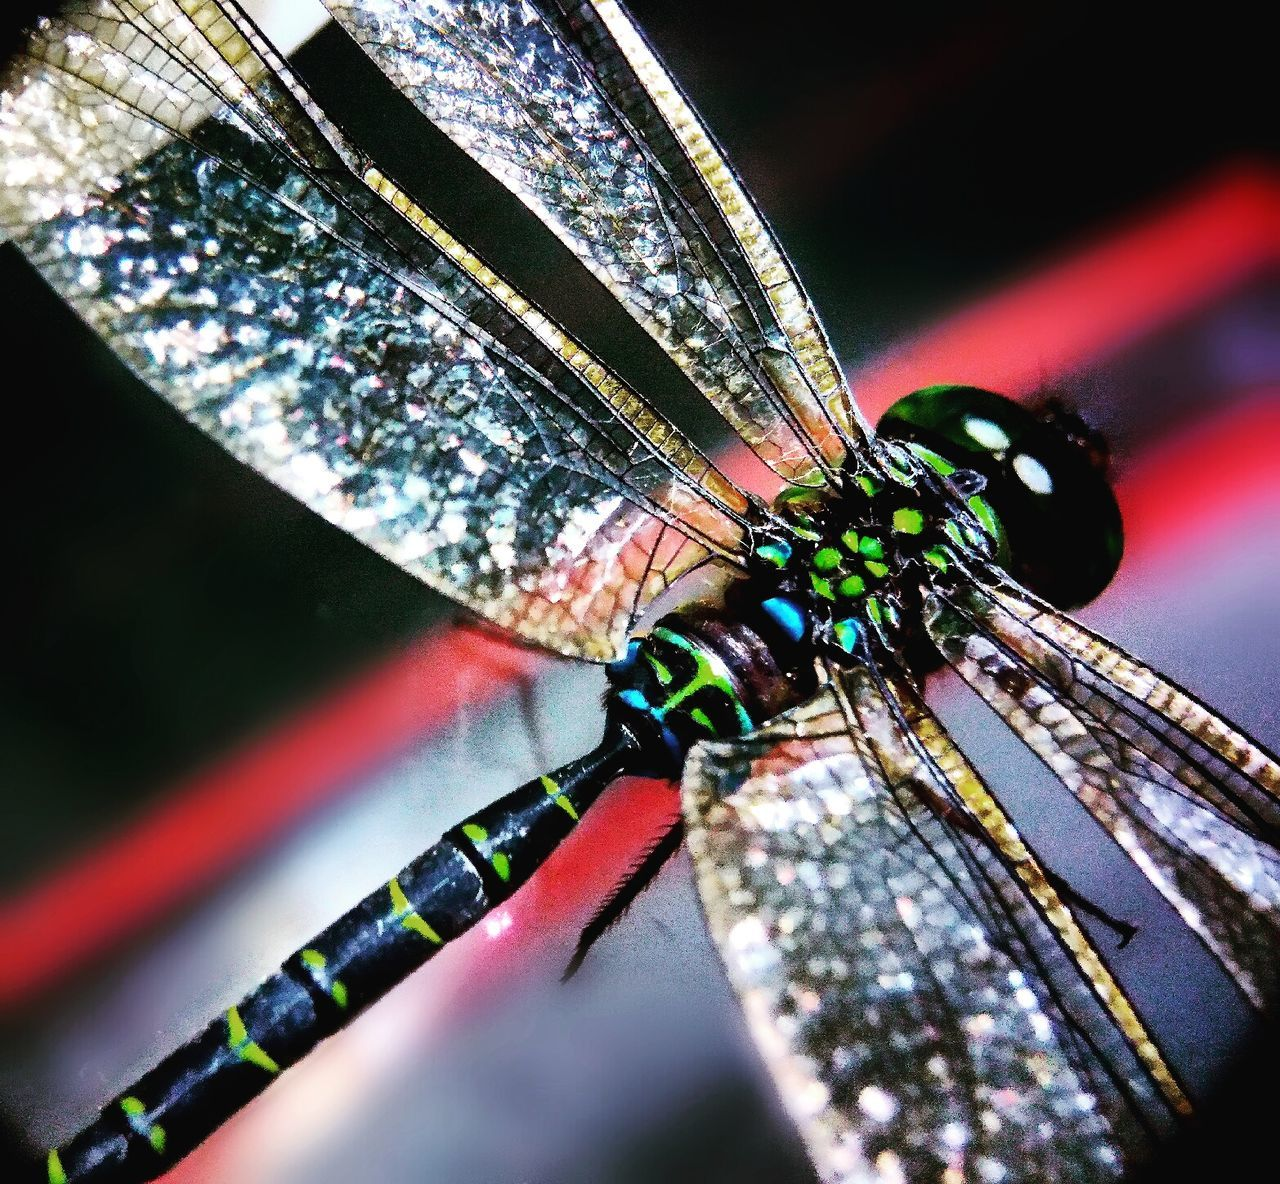 Dragon fly Close-up Insect No People Multi Colored Day Indoors  Animal Themes Macro Photography Macrophotography Macroclique Macro_perfection Macro_captures Macro World Macro_collection Nature_collection EyeEm Best Shots EyeEm Nature Lover Macroporn Macroworld_tr Macroworld Macro_secrets Macroinsect Macro Insects